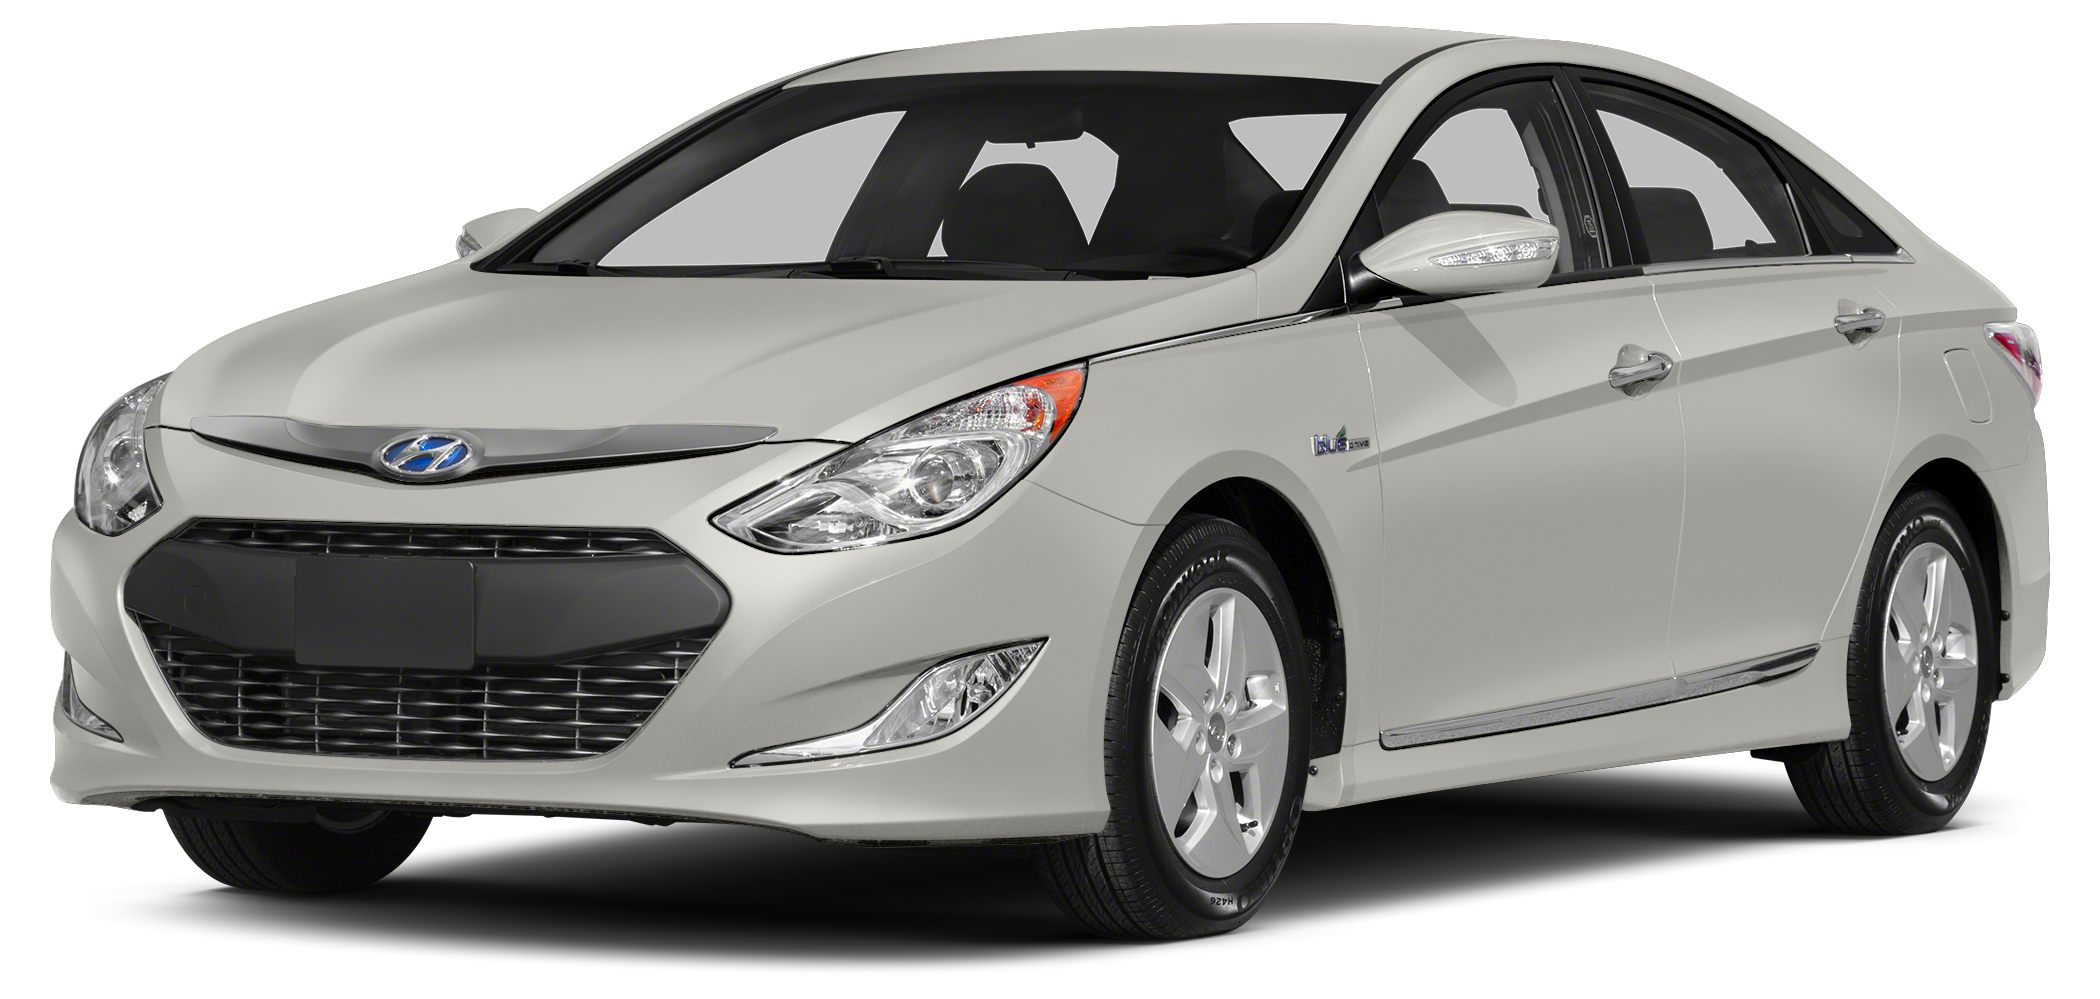 2013 Hyundai Sonata Hybrid Base USB Port MP3- USB  I-Pod Ready ONE OWNER Clean Carfax Non